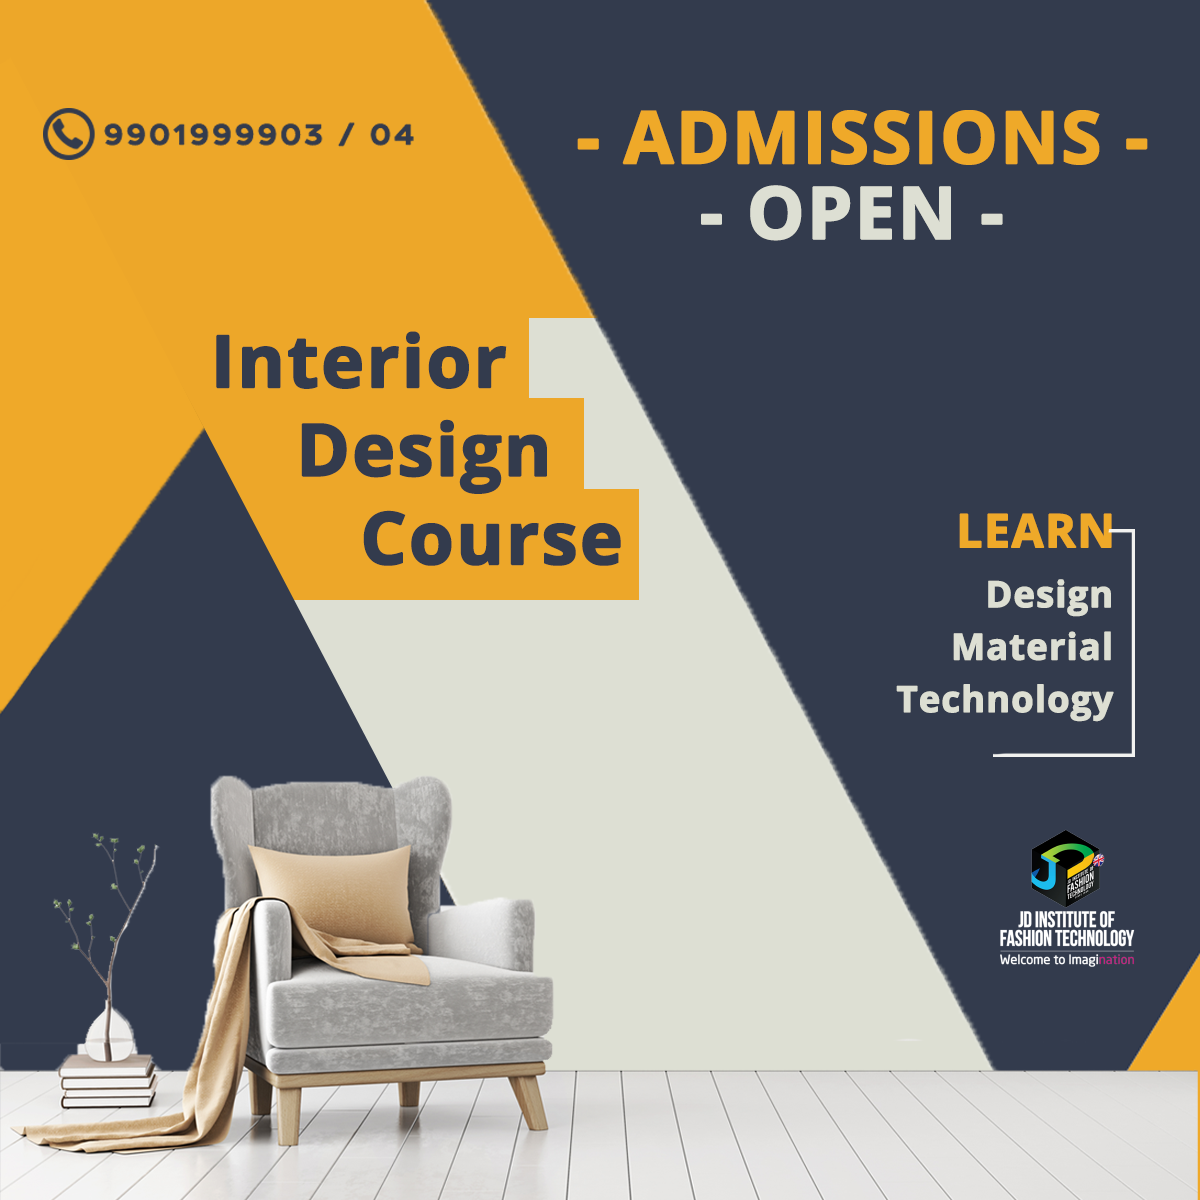 Degree and diploma course admissions for interior design is open at jd institute of fashion technology also rh pinterest